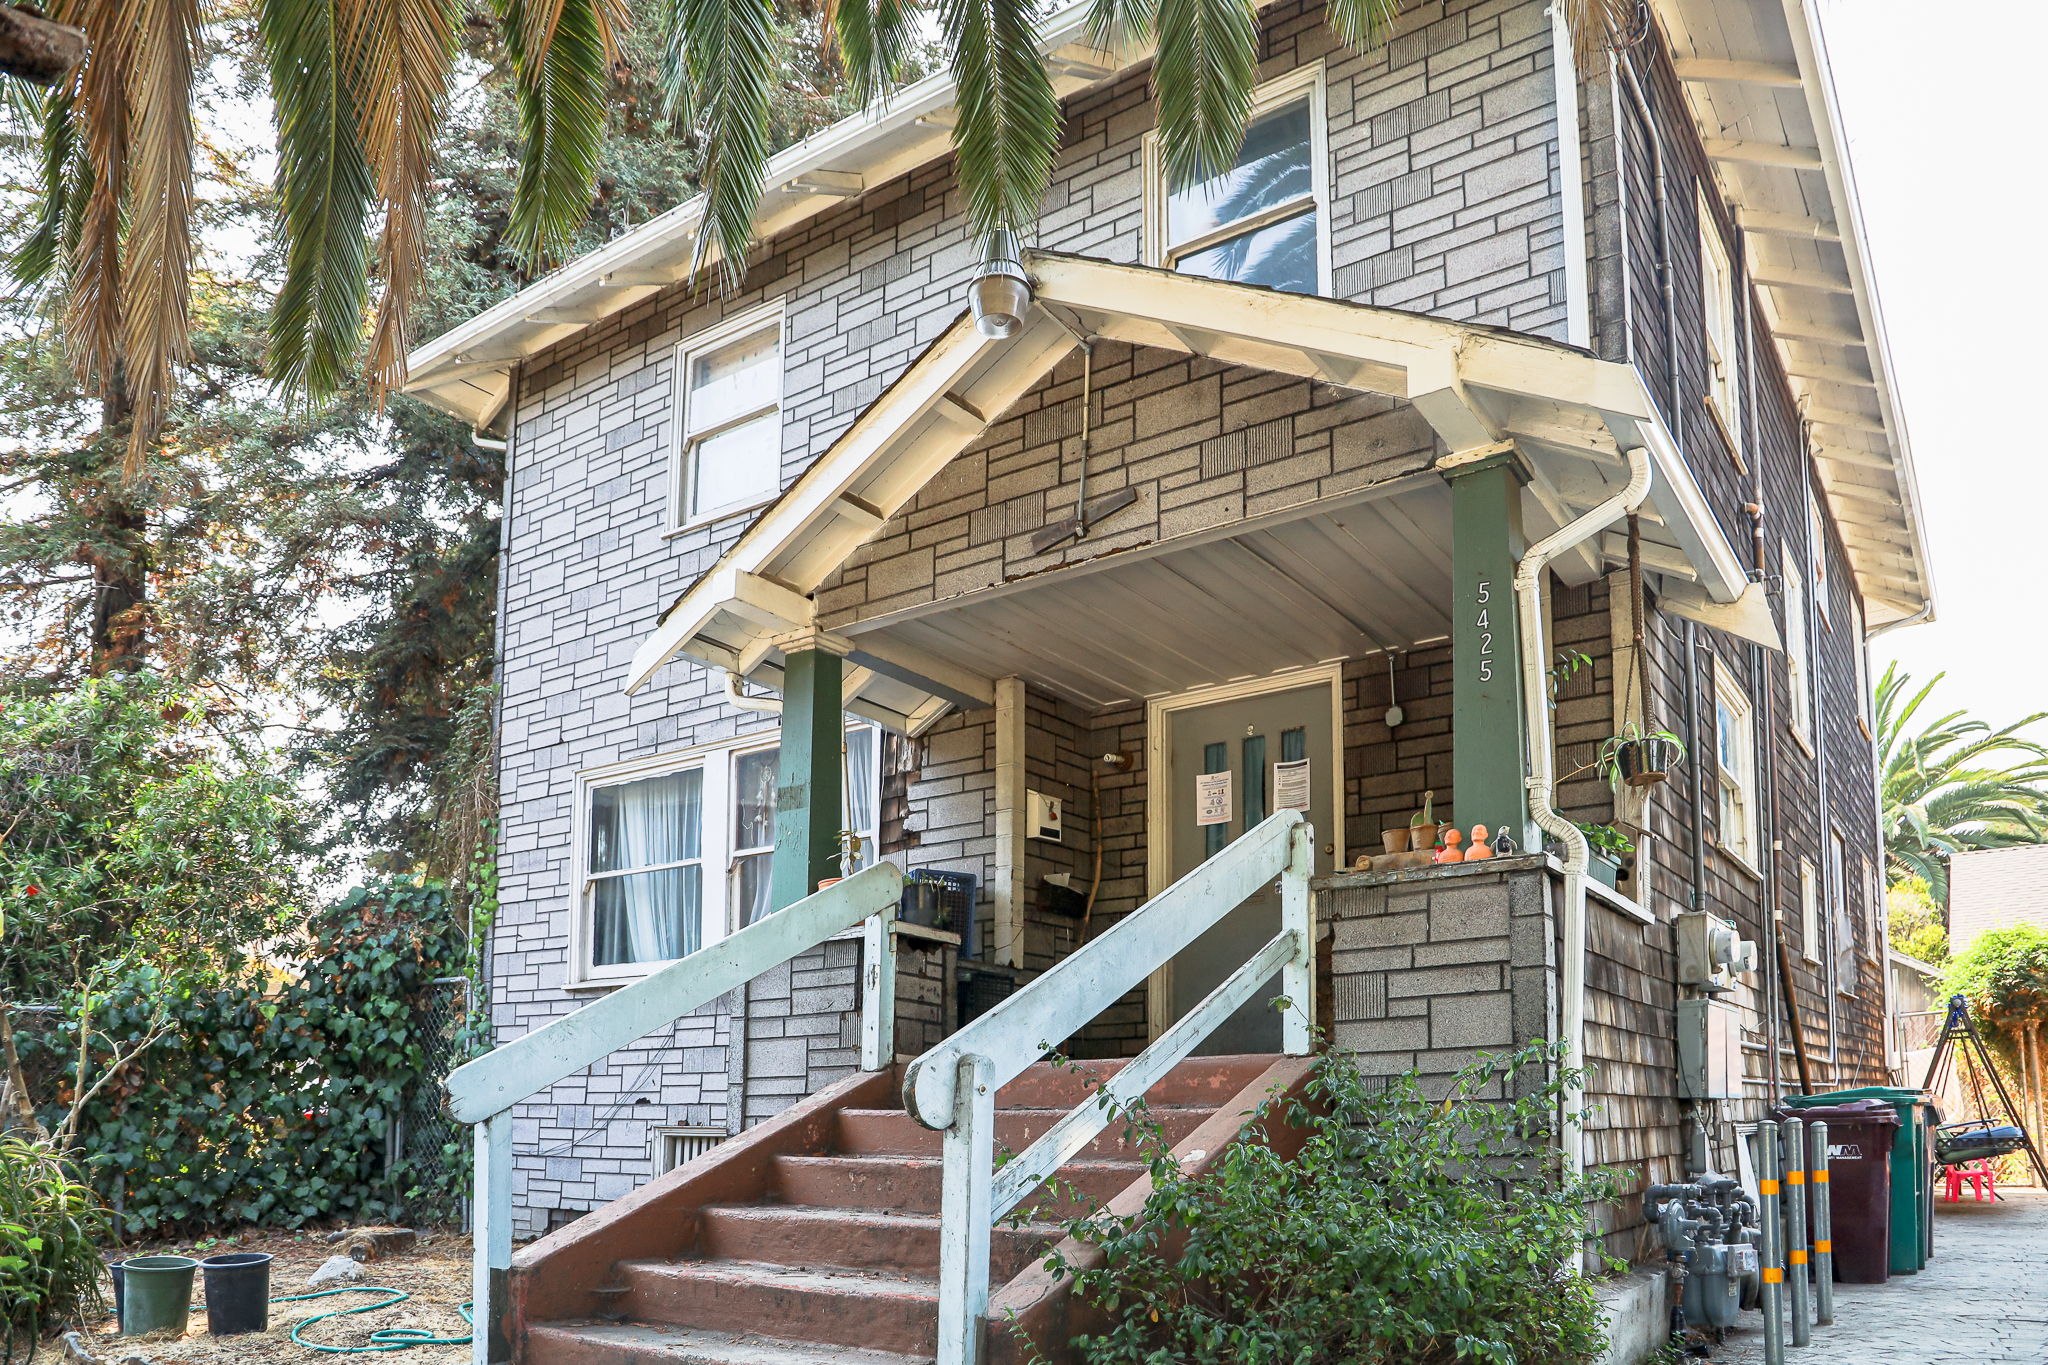 Pending Sale with Darryl Glass: 5425 Shattuck Avenue, Oakland, CA 94609